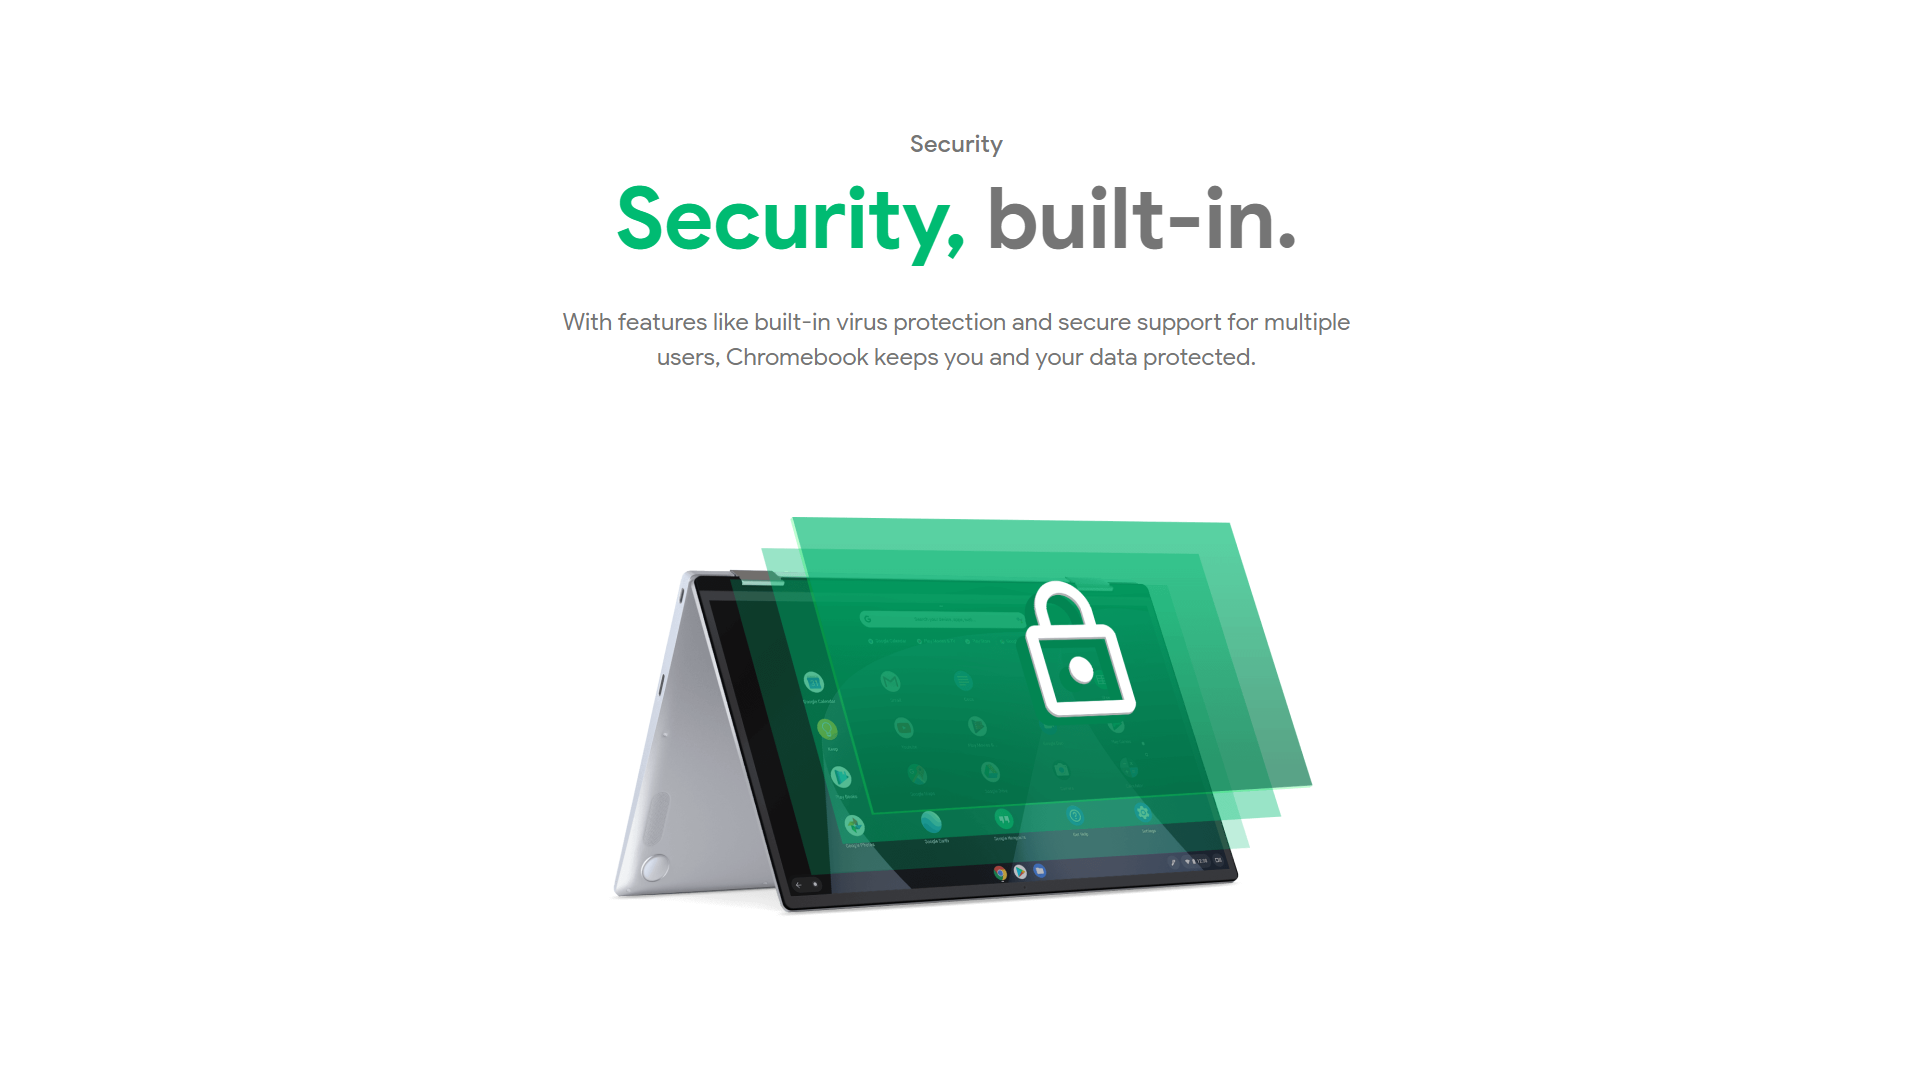 Built-in security on Chromebooks